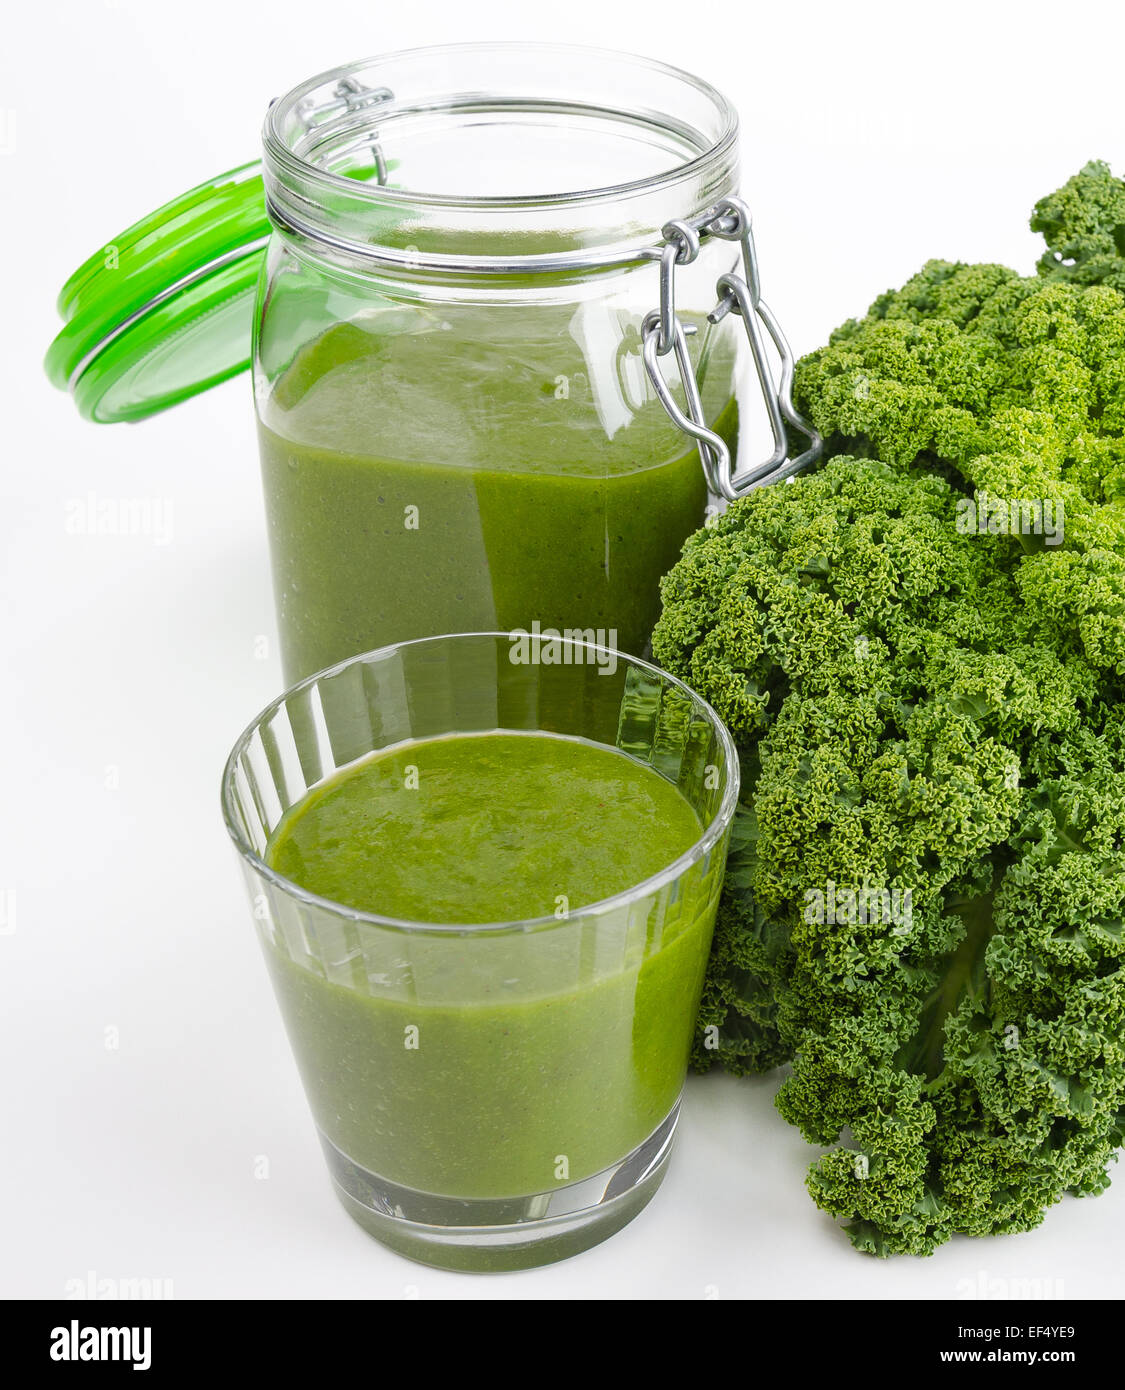 Green smoothie in a glass and in a open jar with fresh kale. A raw, healthy and vegan beverage made of green leafs - Stock Image